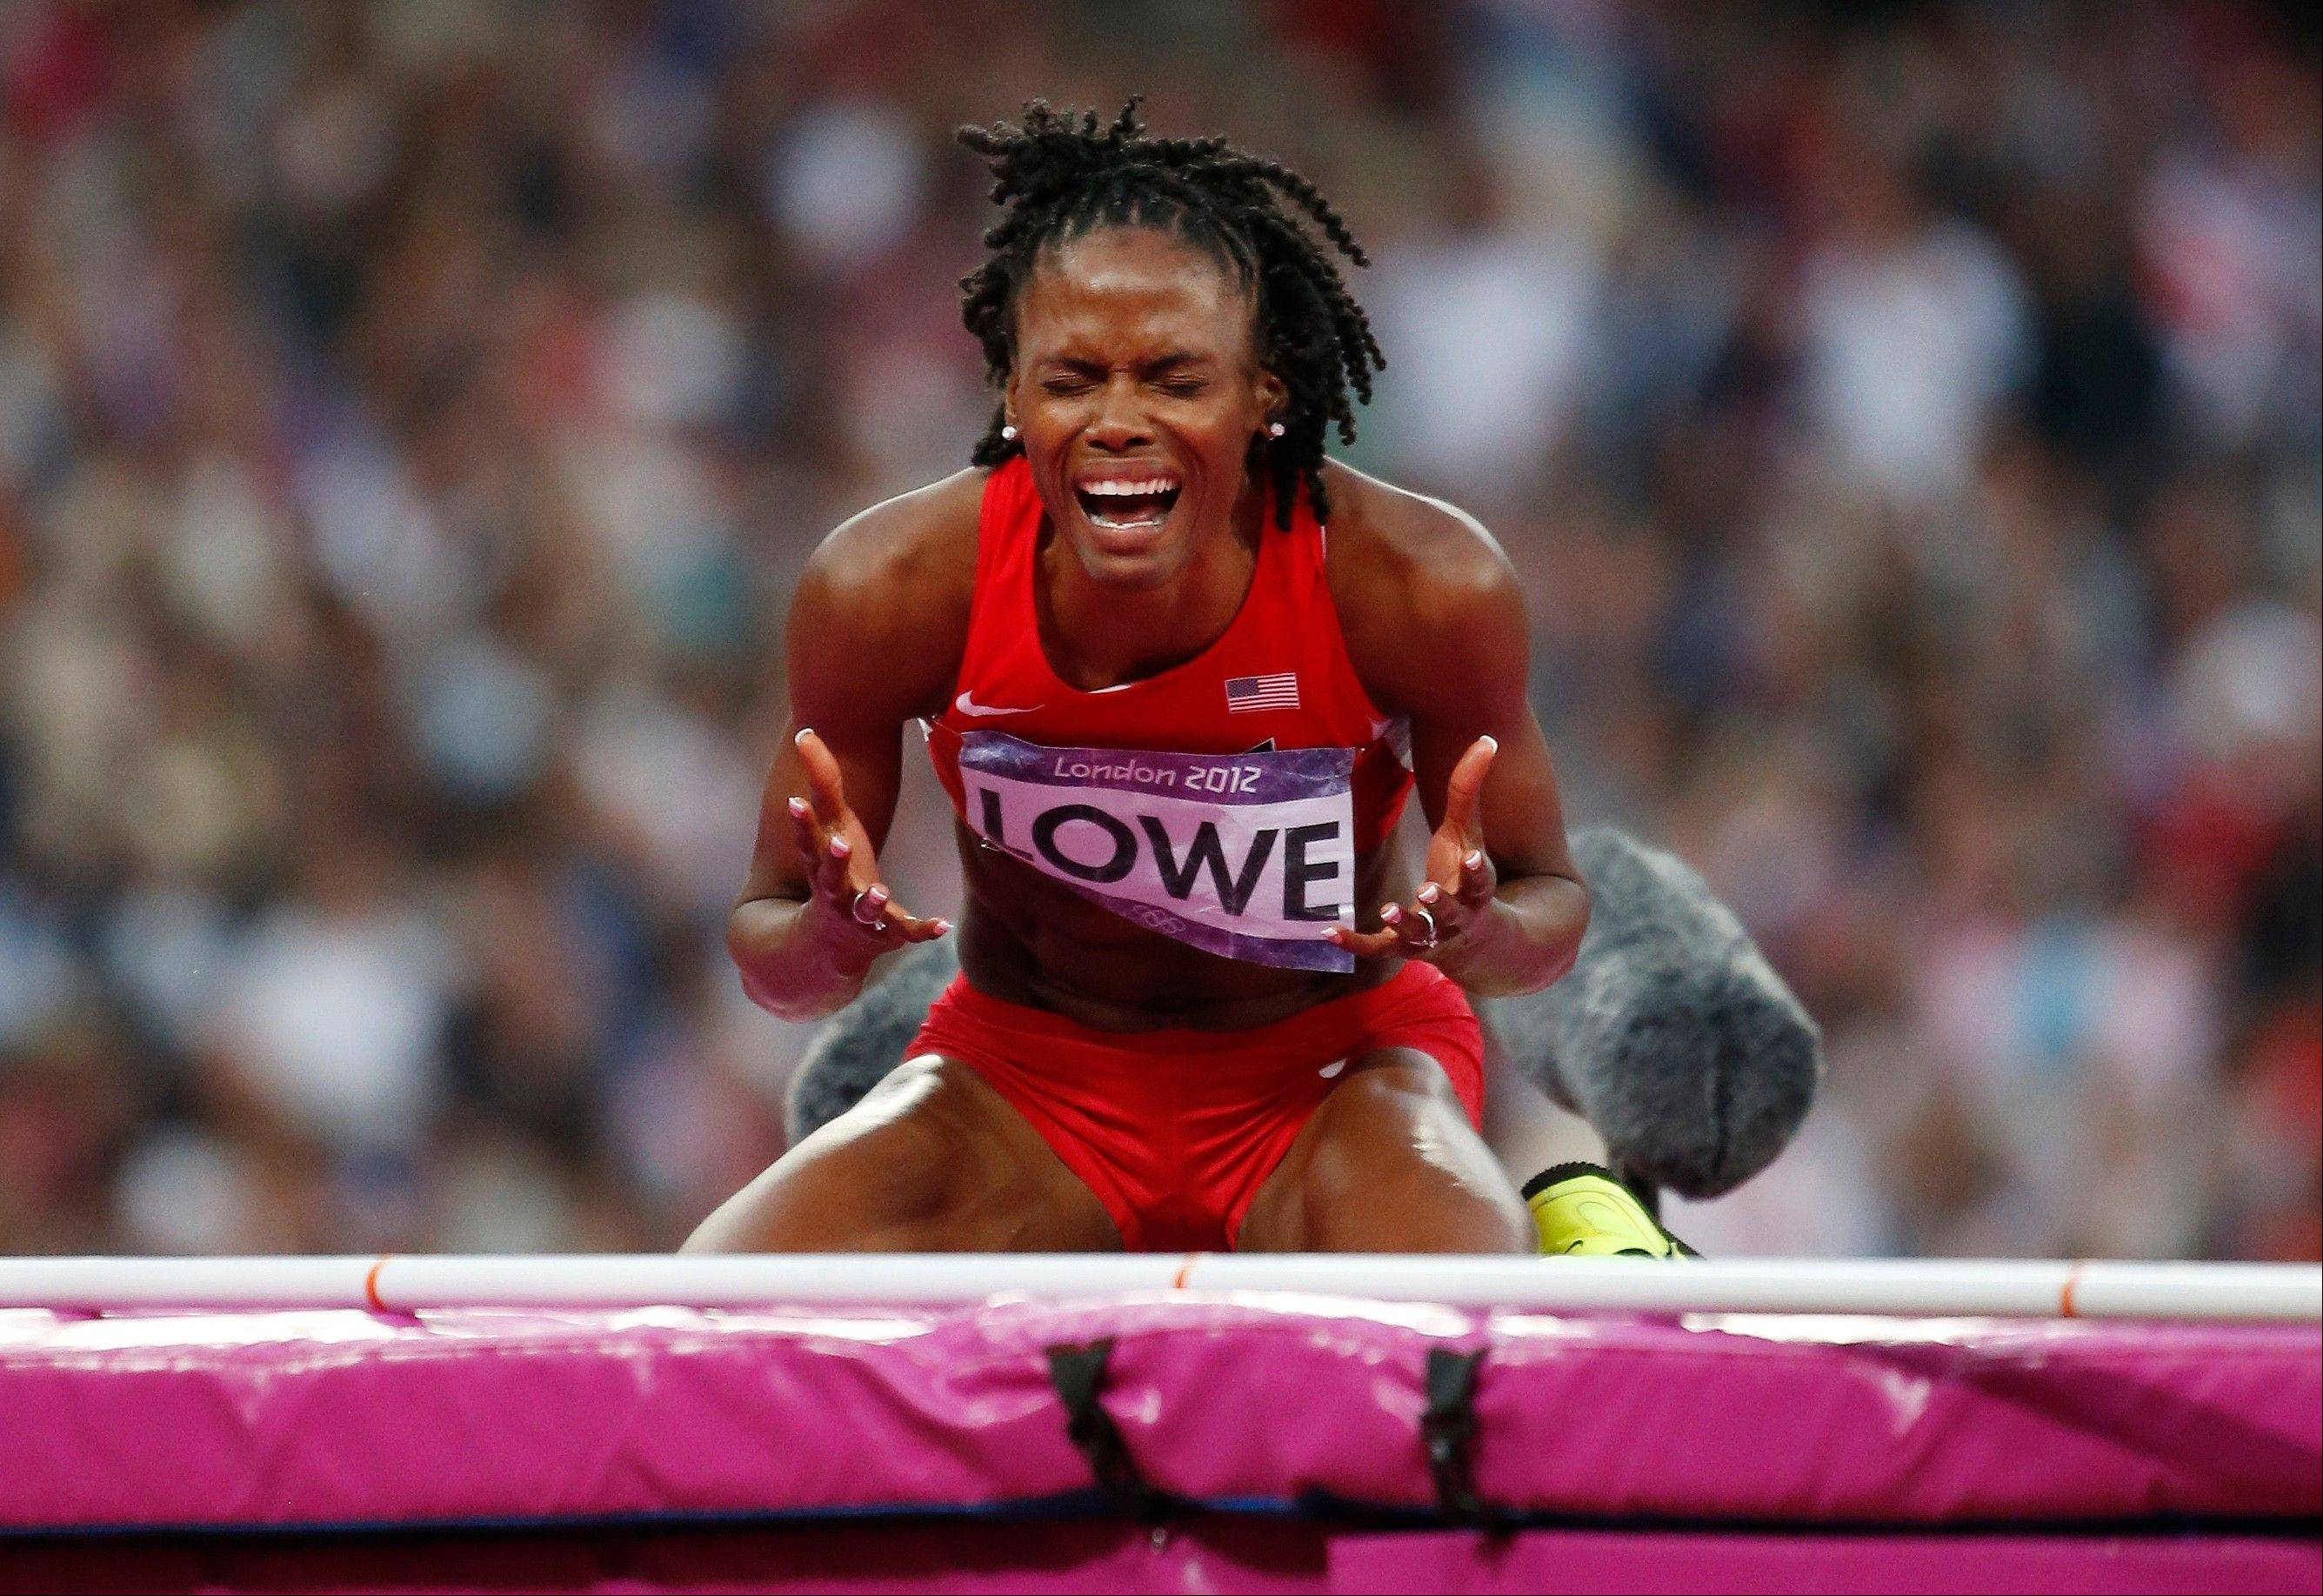 United States' Chaunte Lowe reacts after failing to clear the bar in the women's high jump final during the athletics in the Olympic Stadium at the 2012 Summer Olympics, London, Saturday, Aug. 11, 2012.